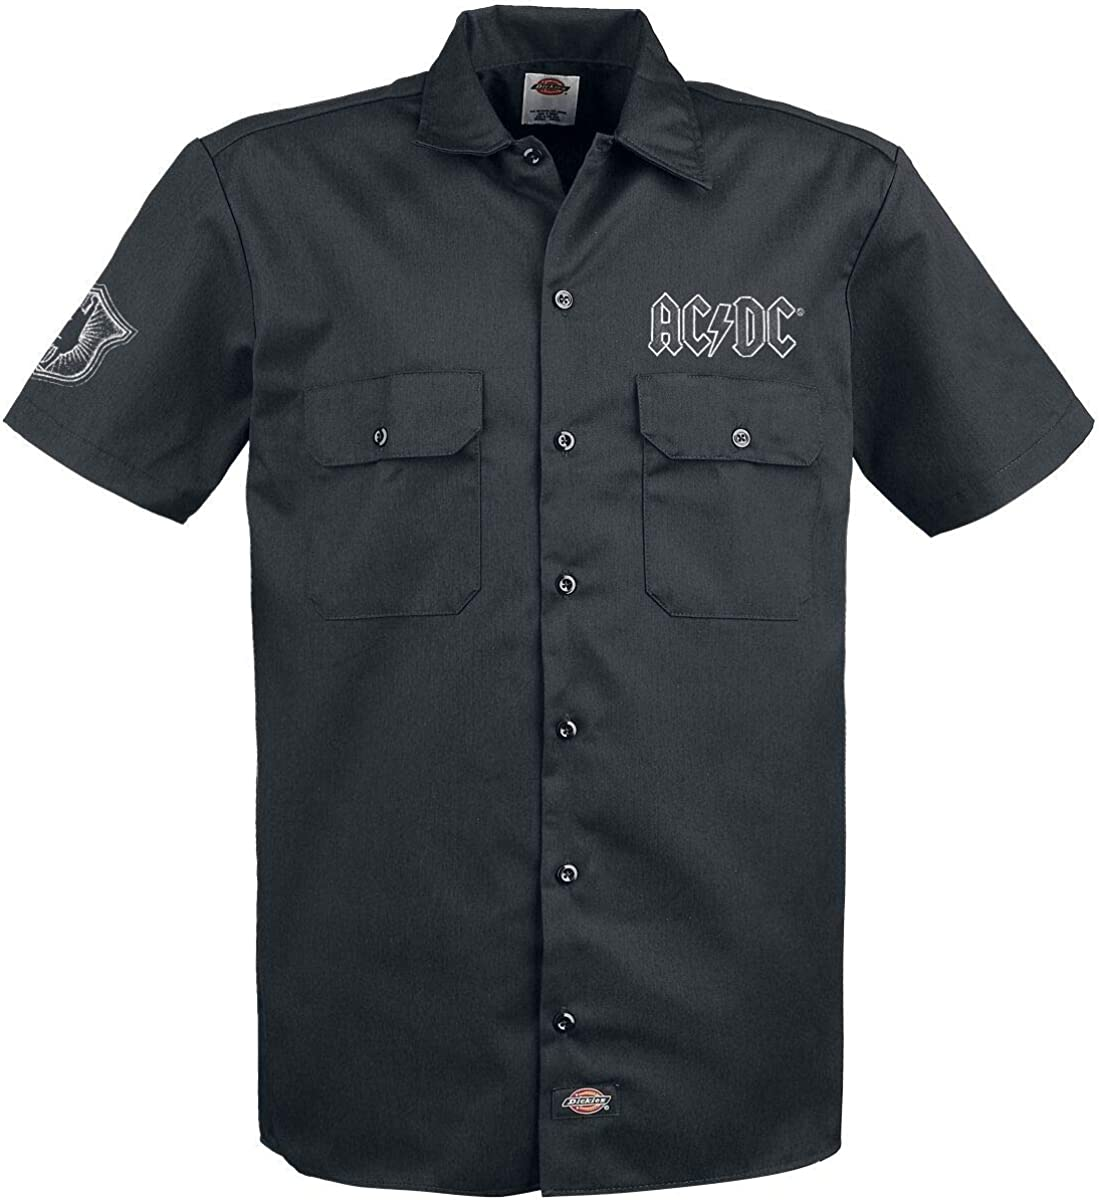 AC/DC Let There Be Rock, Dickies Workerhemd Hombre Camisa Manga Corta Negro, Regular: Amazon.es: Ropa y accesorios